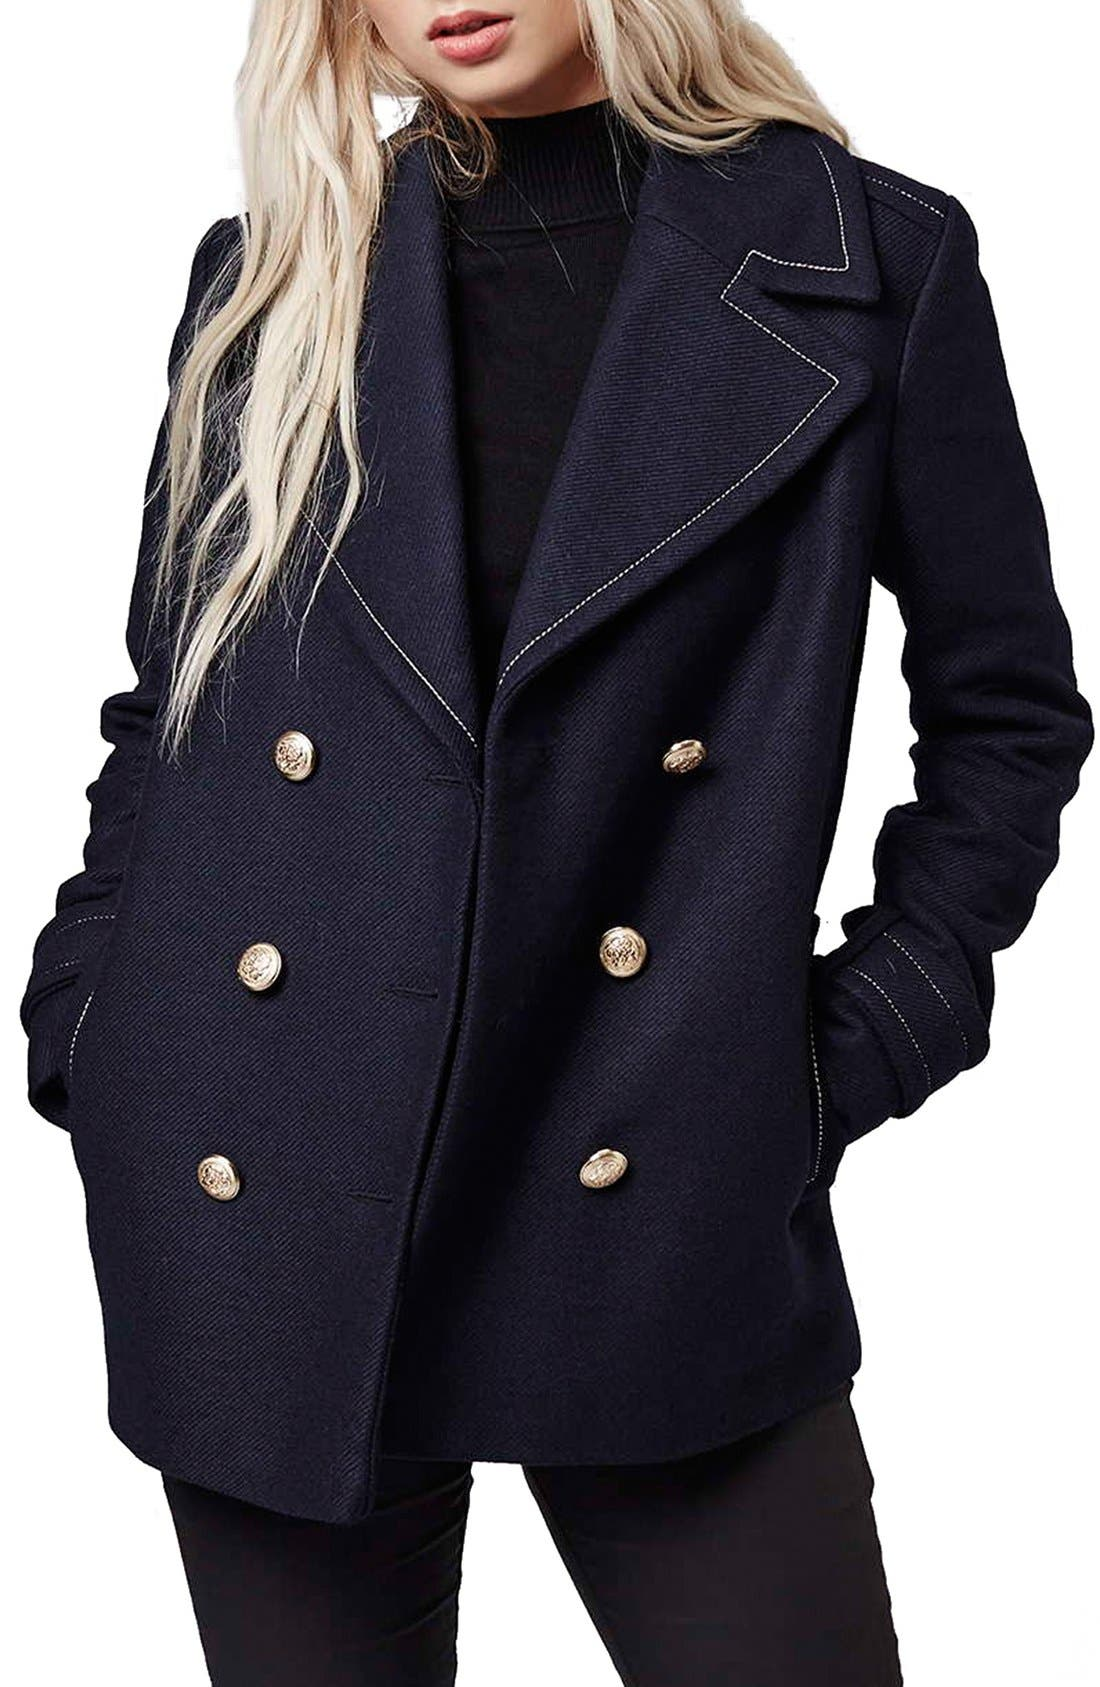 Main Image - Topshop Contrast Stitch Peacoat